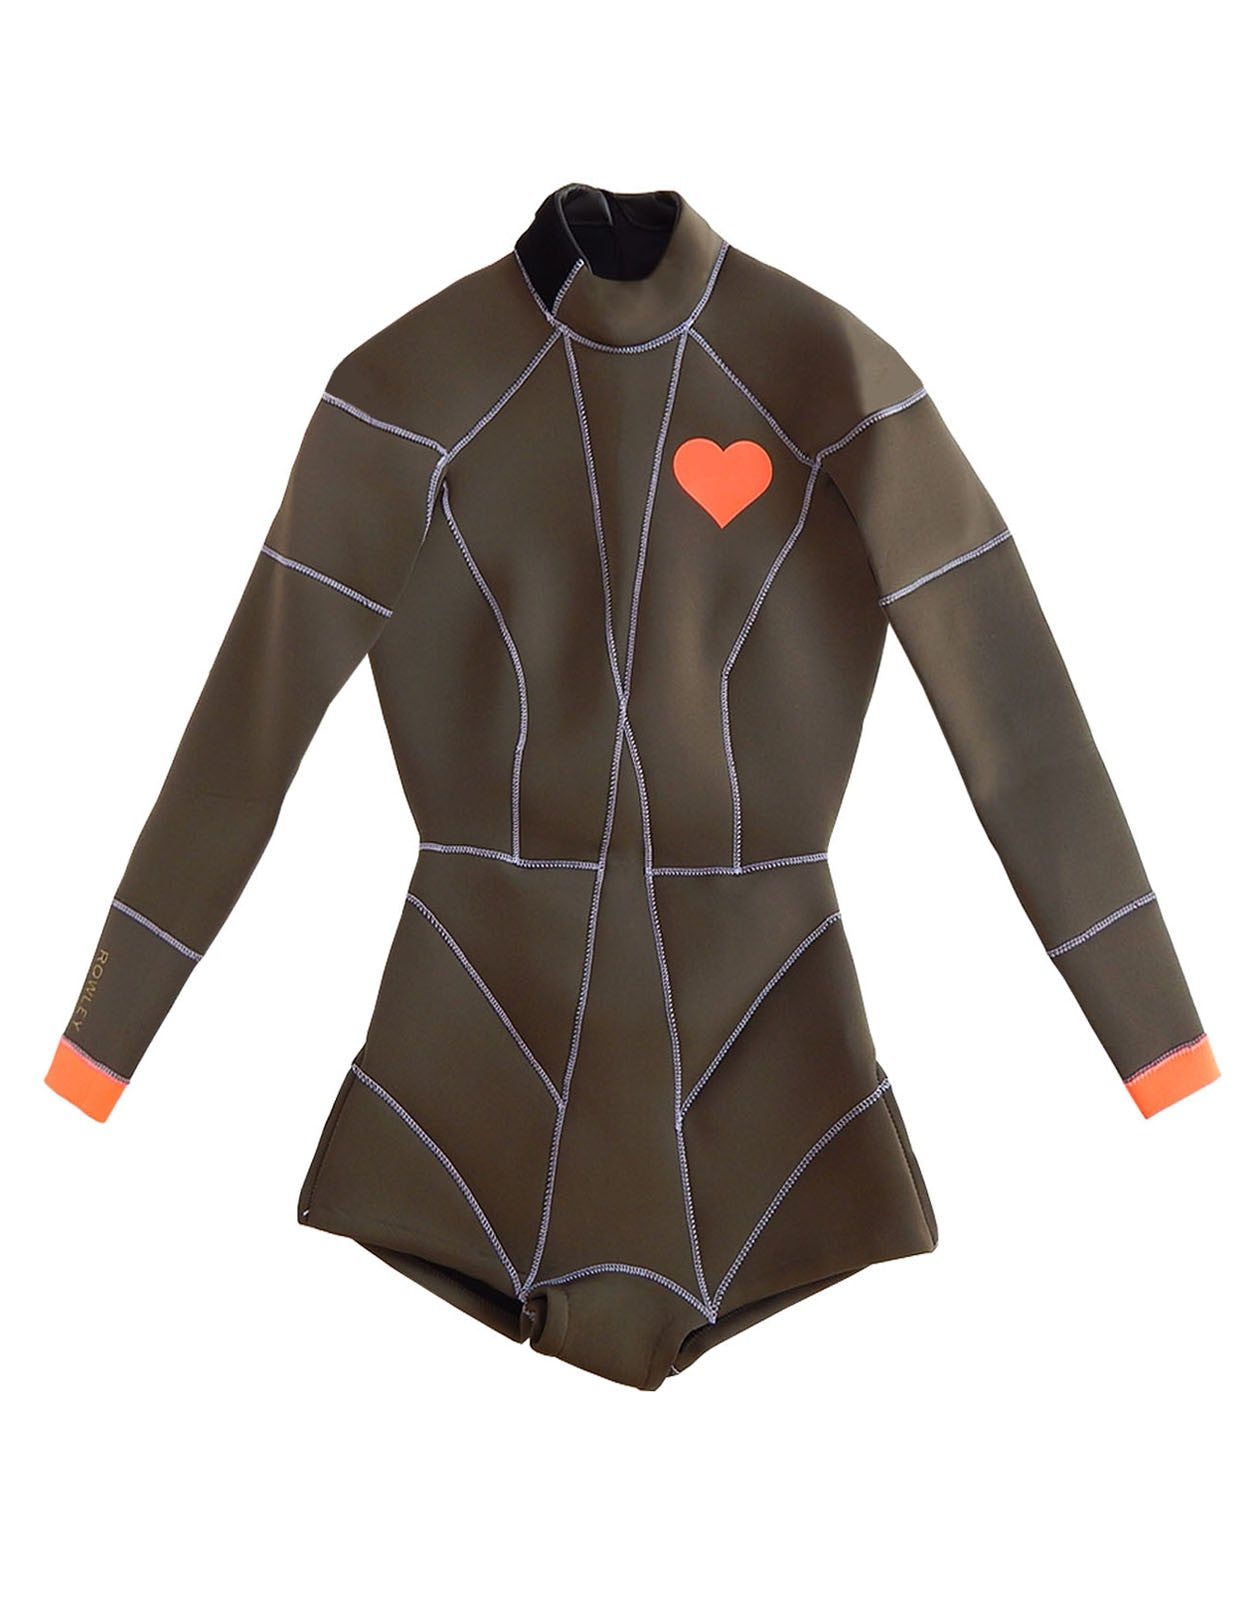 Flat image of the 2MM Fiber-Lite neoprene wetsuit with heart emblem detail on chest